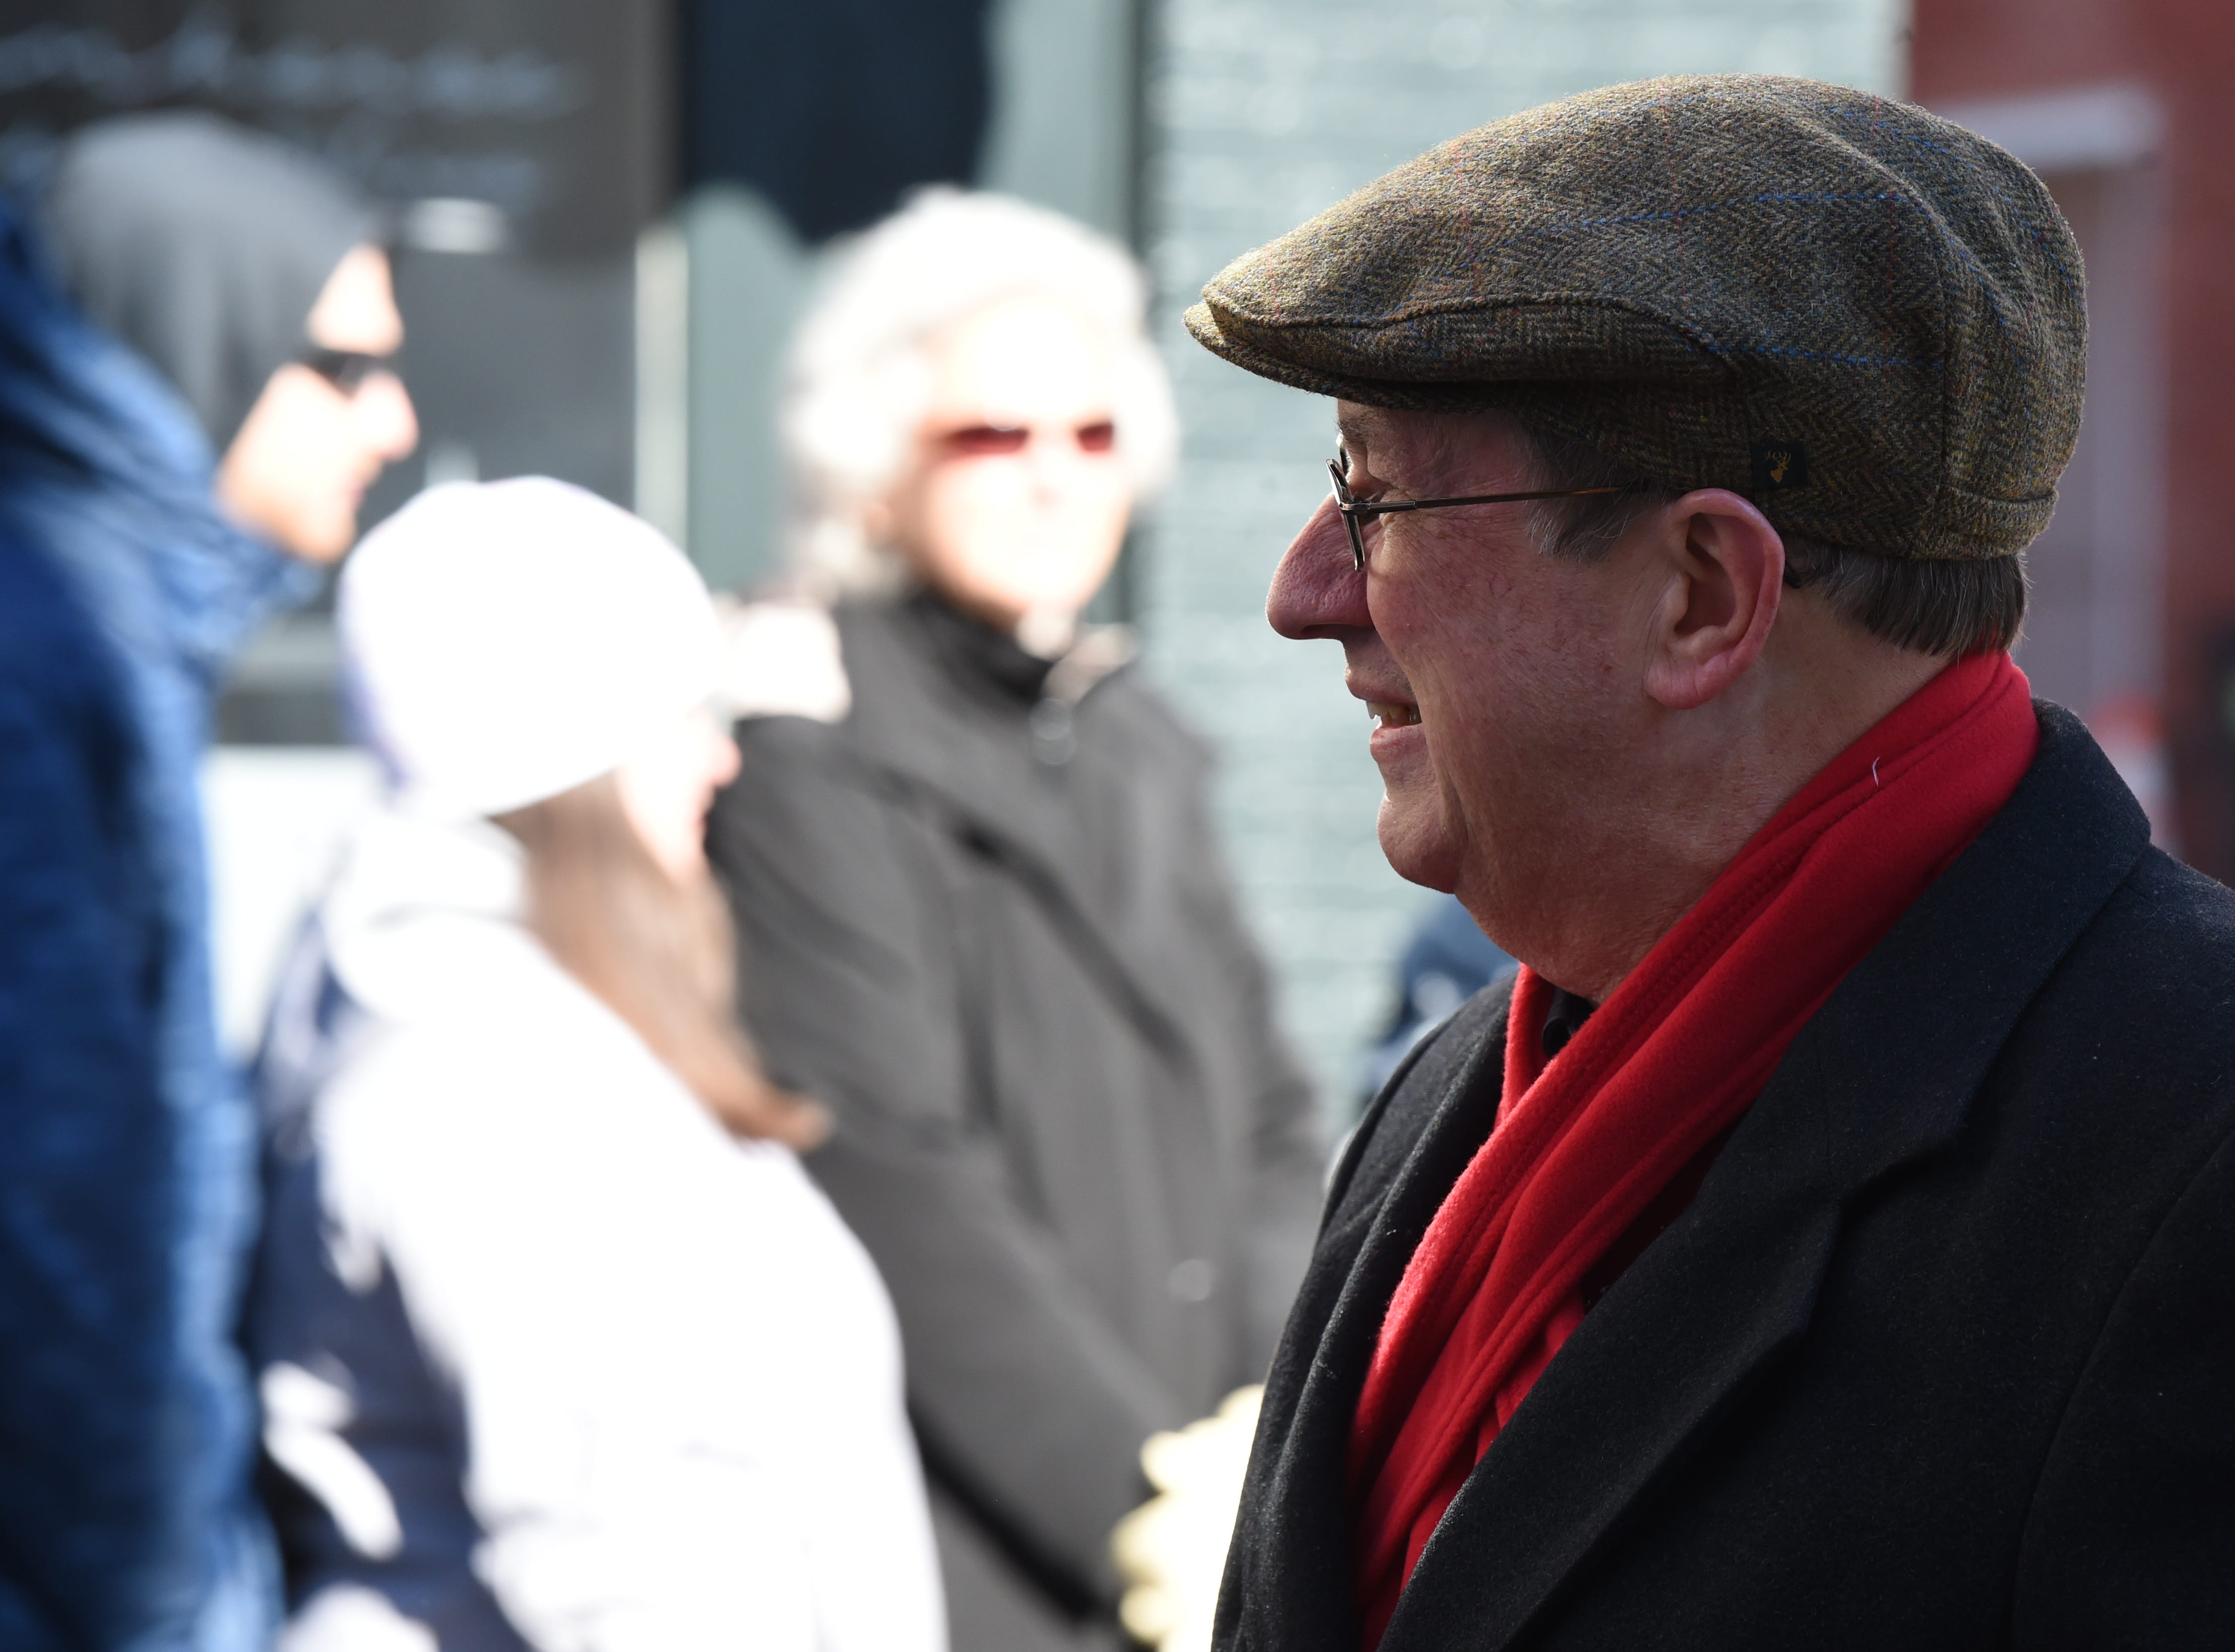 Rep. Bob Goodlatte, who will leave Congress in January, walks in the annual Veterans Day Parade on Saturday, November 10, 2018 in downtown Staunton, Va.